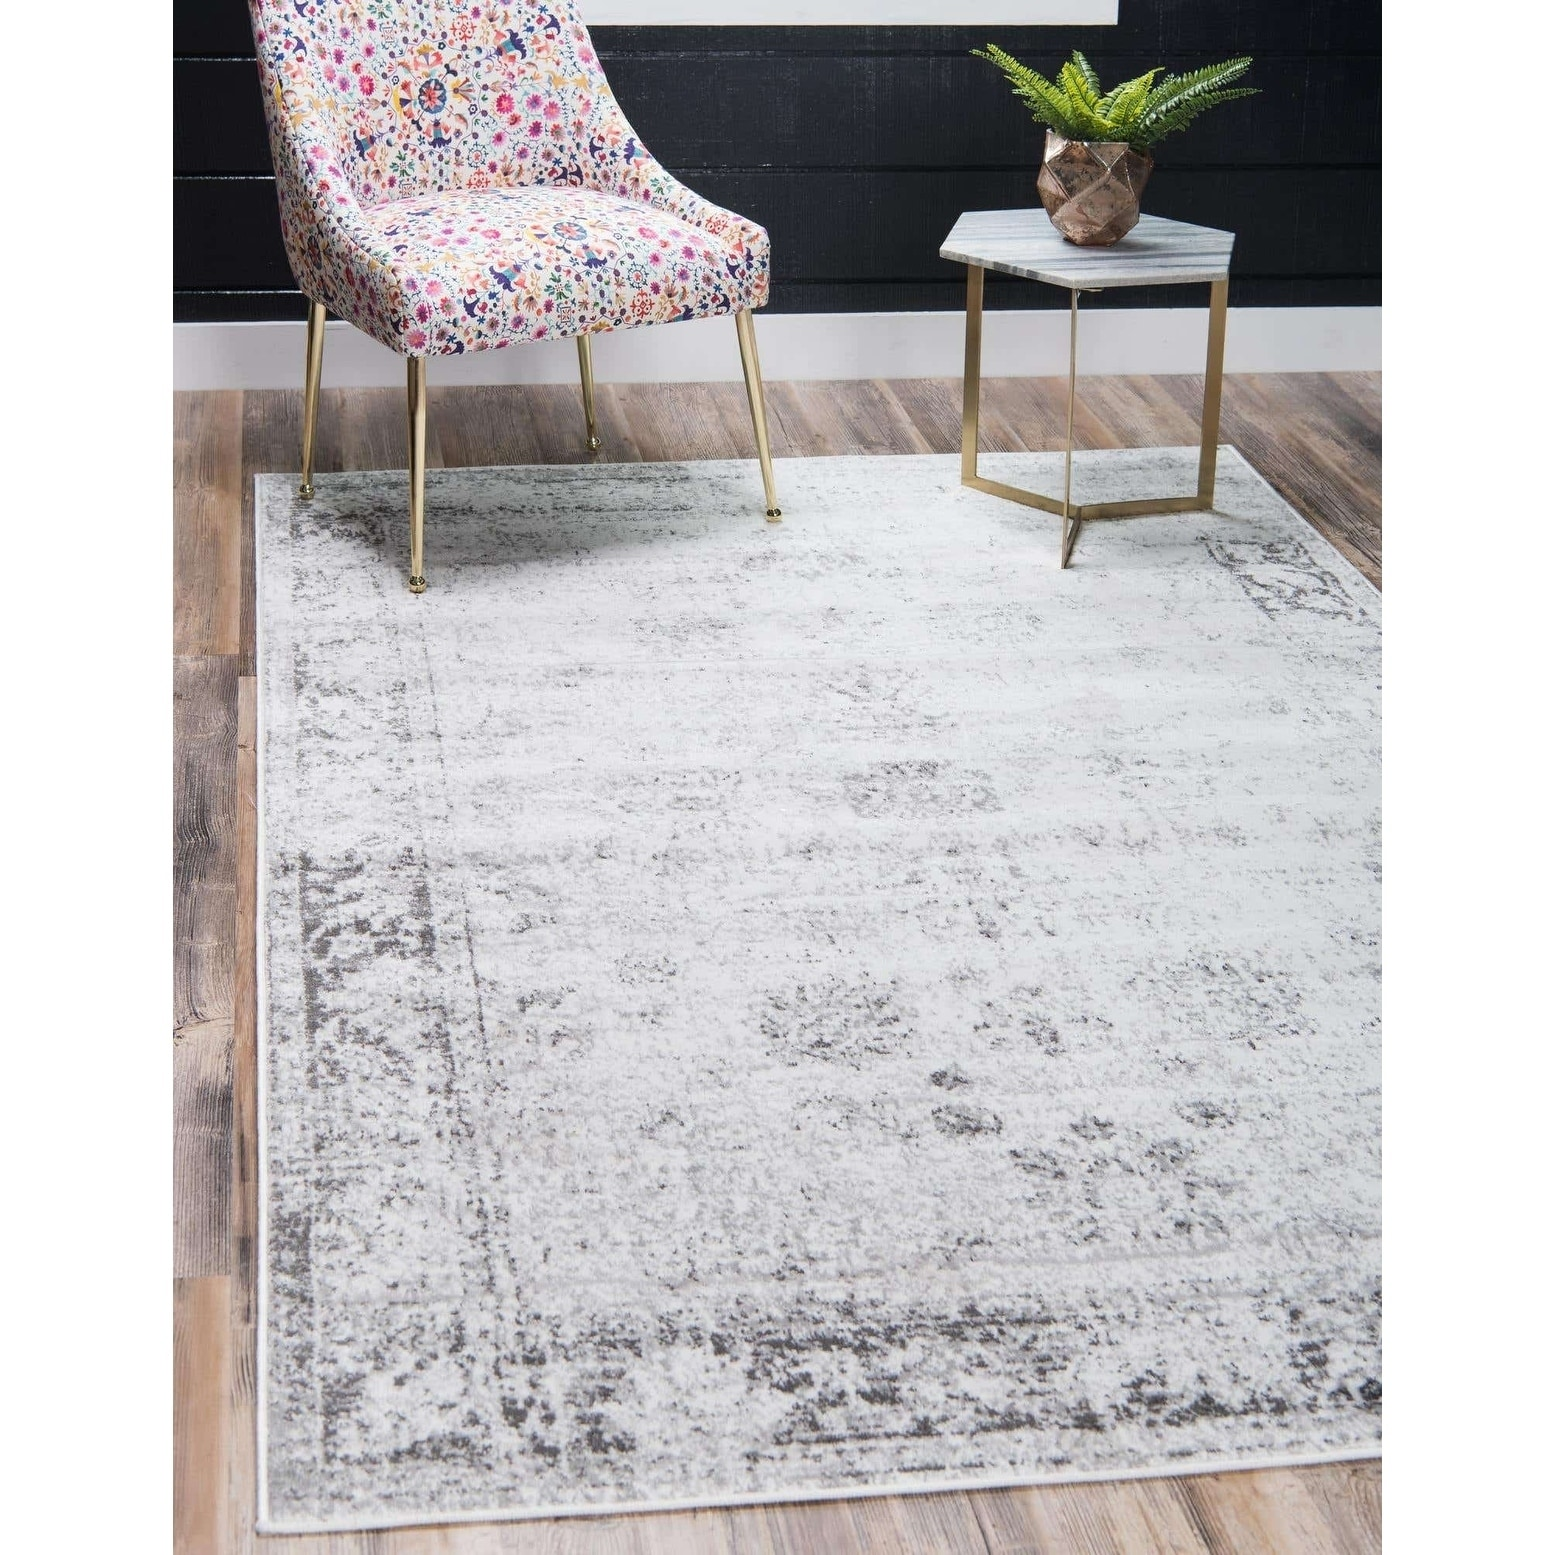 Unique Loom Casino Sofia Area Rug (7 x 10 - Blue)